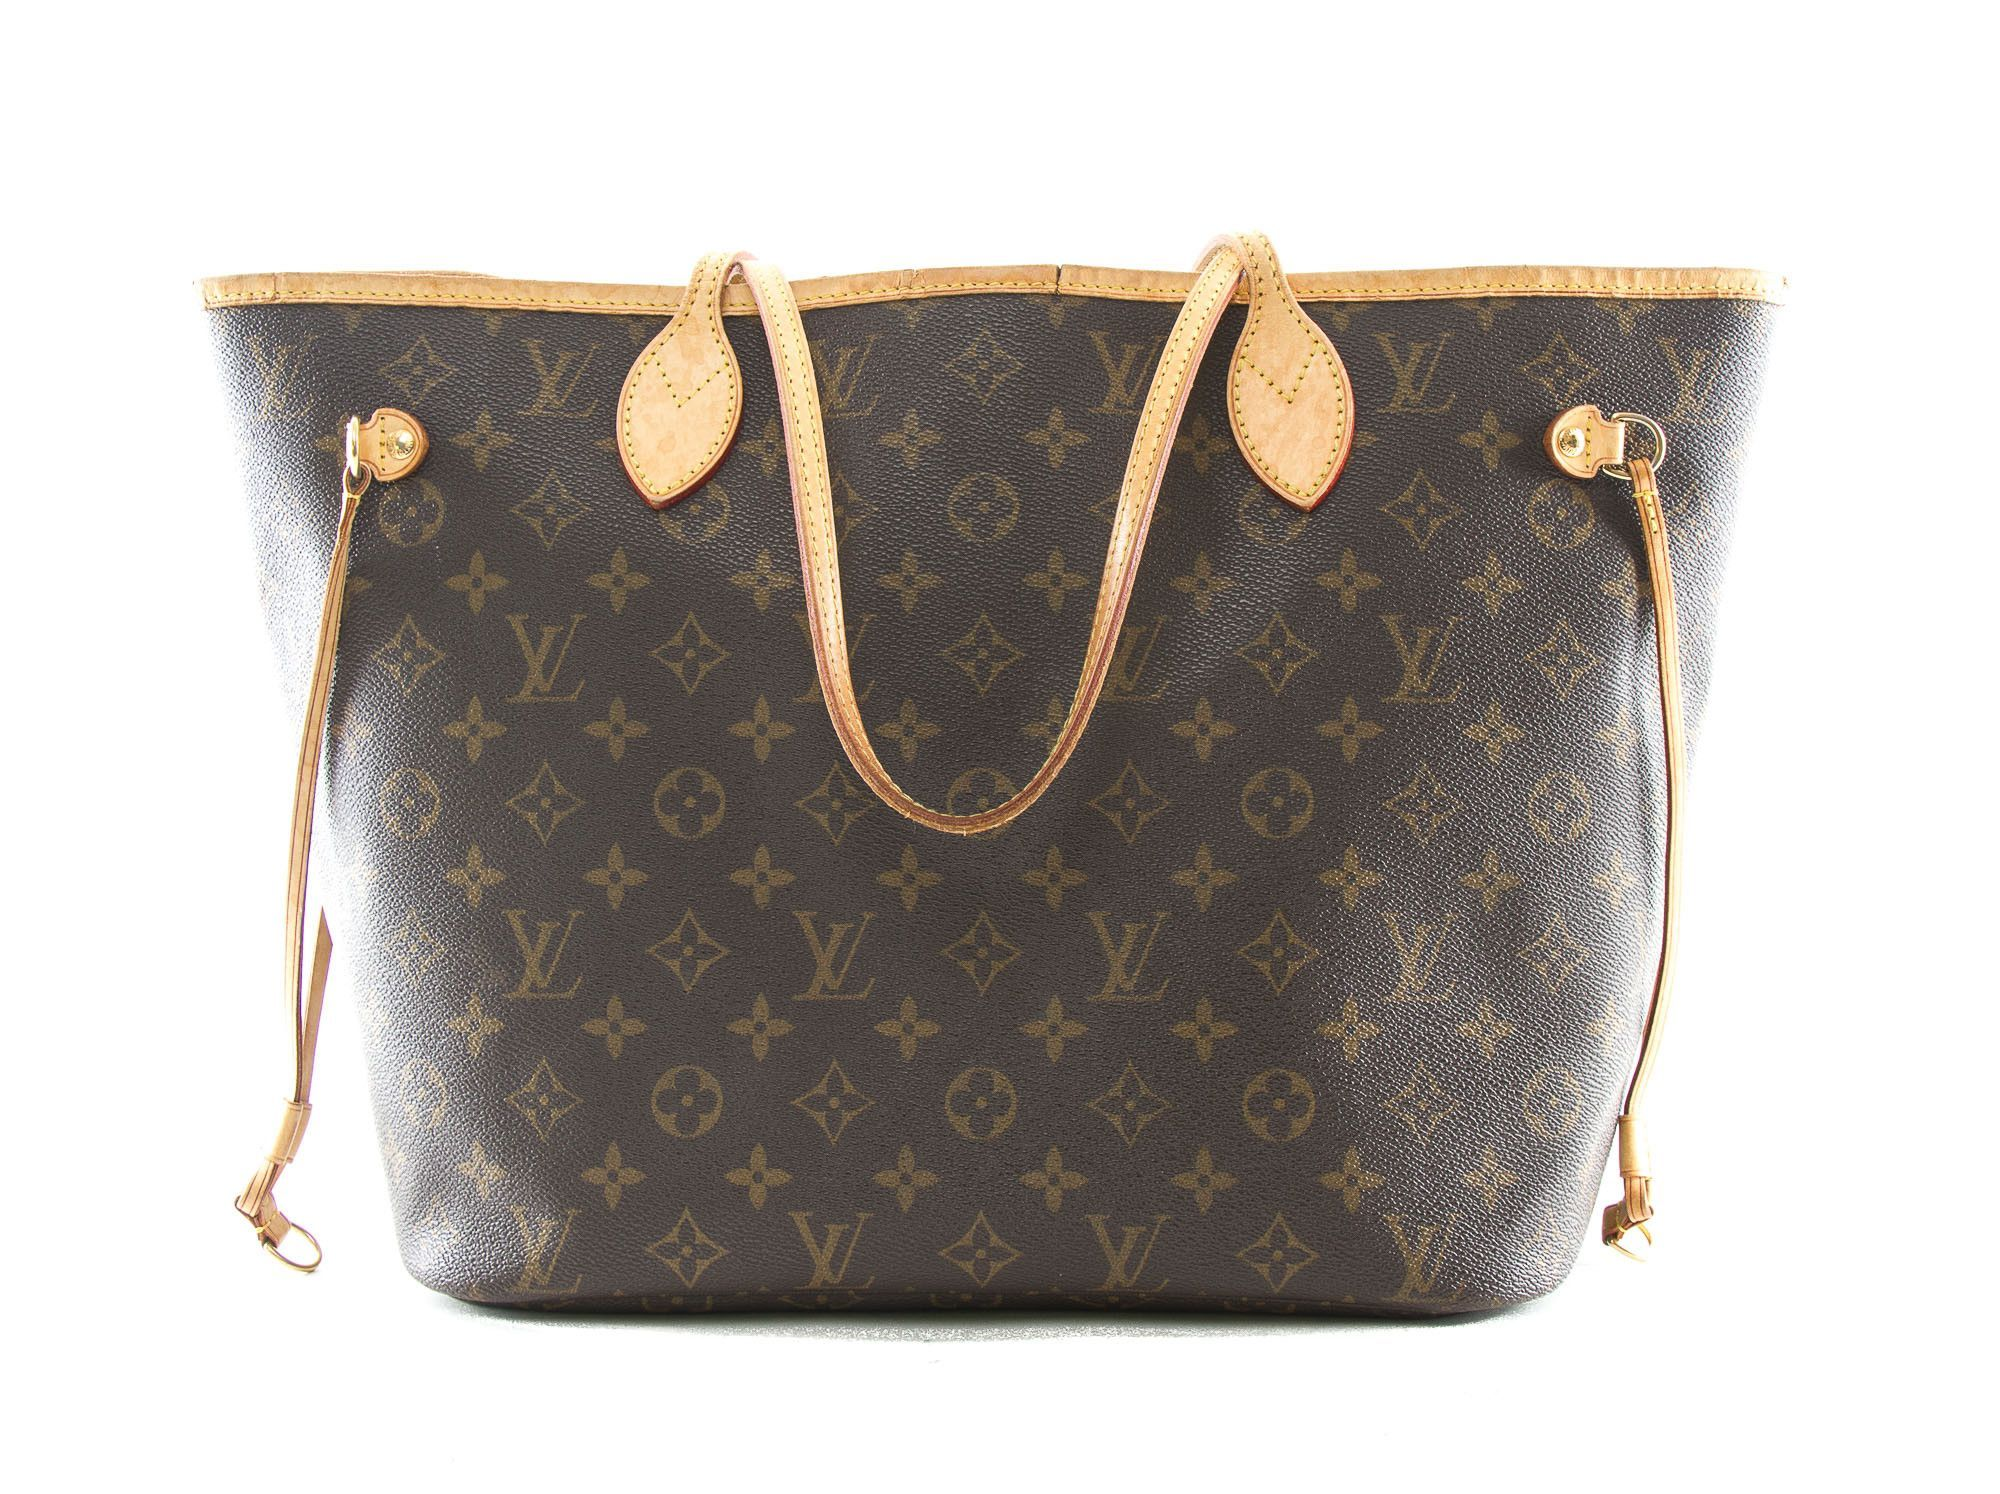 47ab8adf6071 Authentic Louis Vuitton Monogram Neverfull MM Tote bag M40156 ...